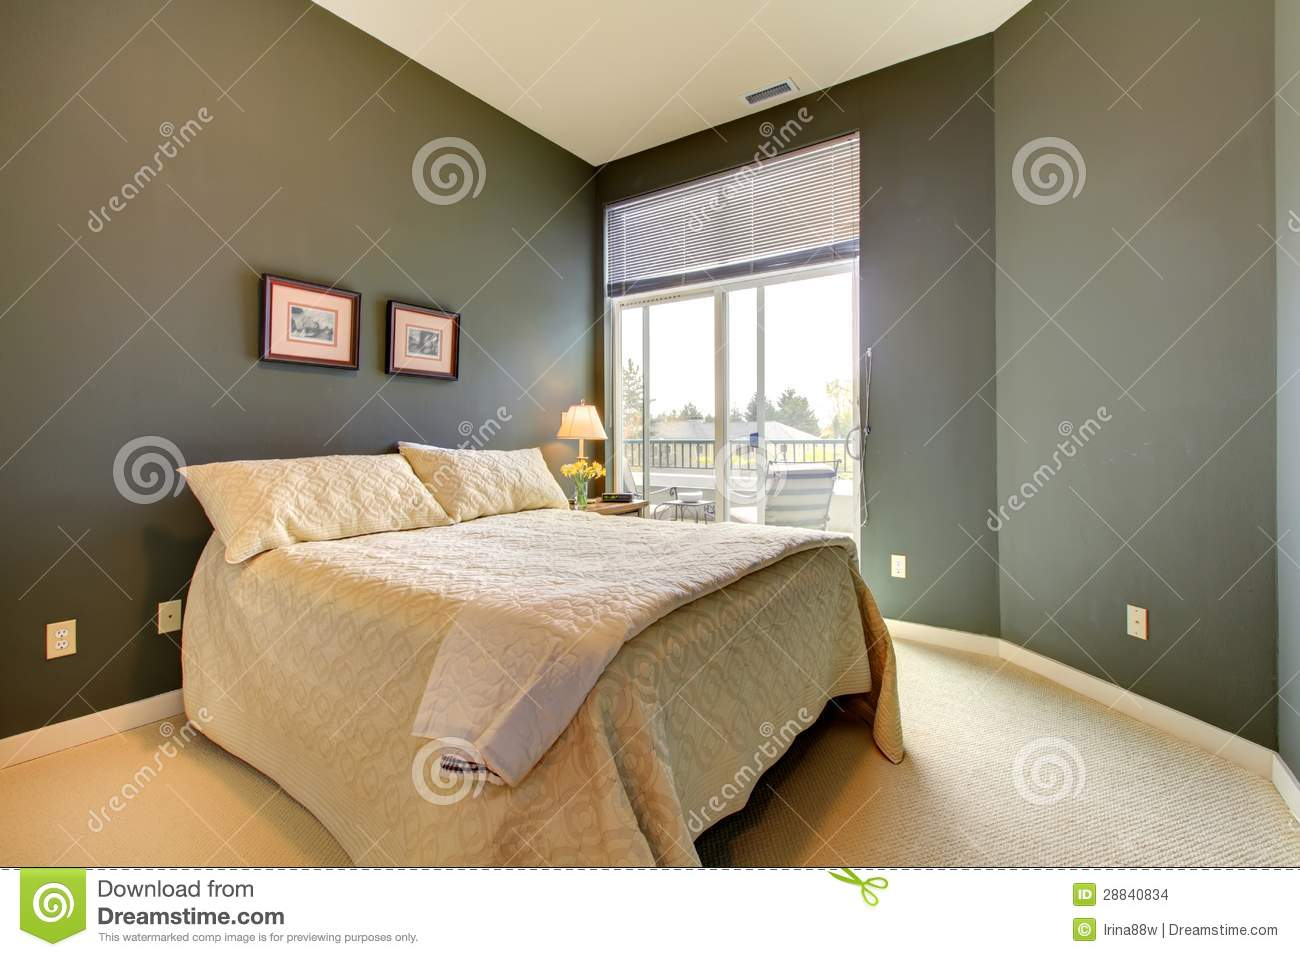 Bedroom Wiht Grey Green Walls And White Bedding Stock Photo Image Of Estate Designer 28840834